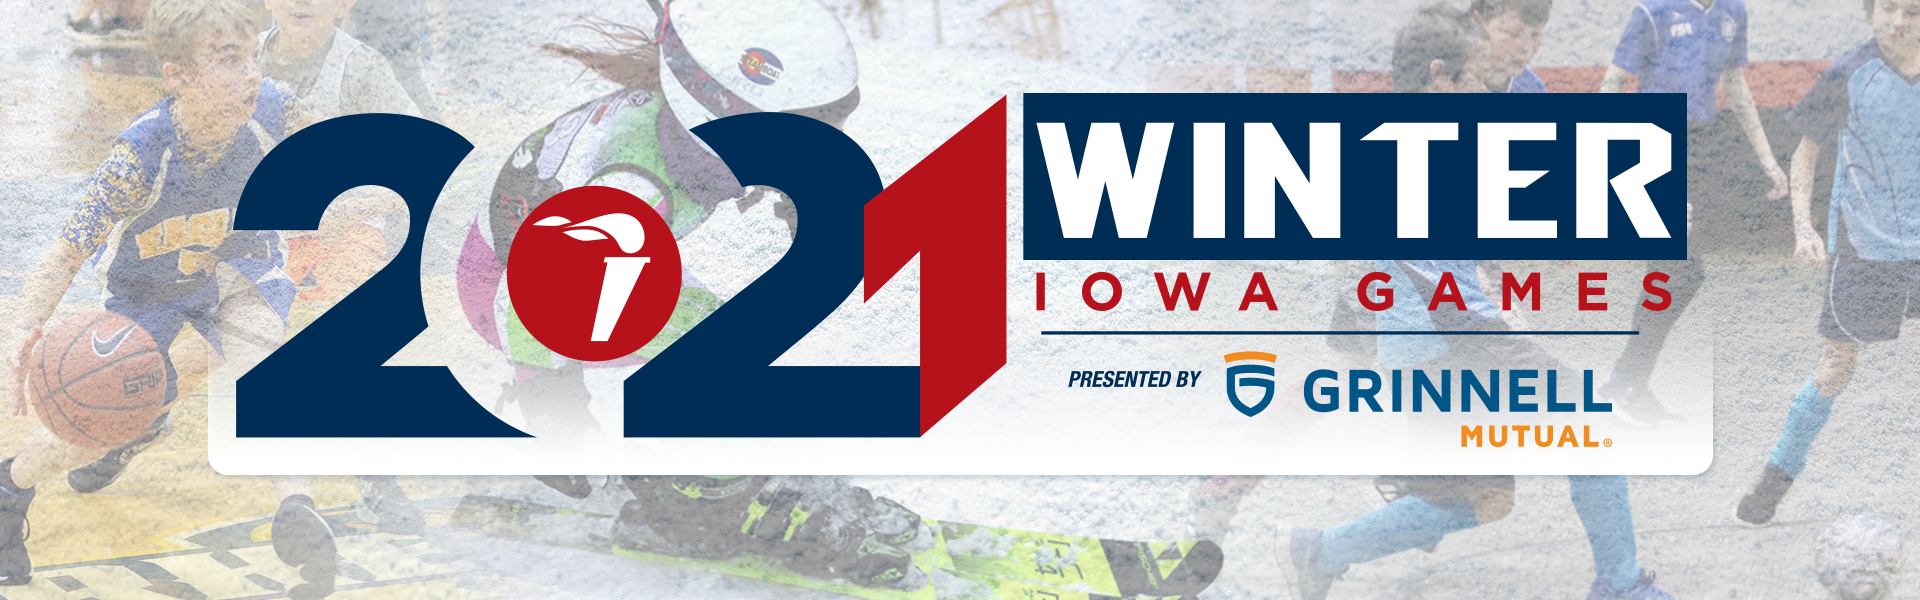 2021 Winter Iowa Games